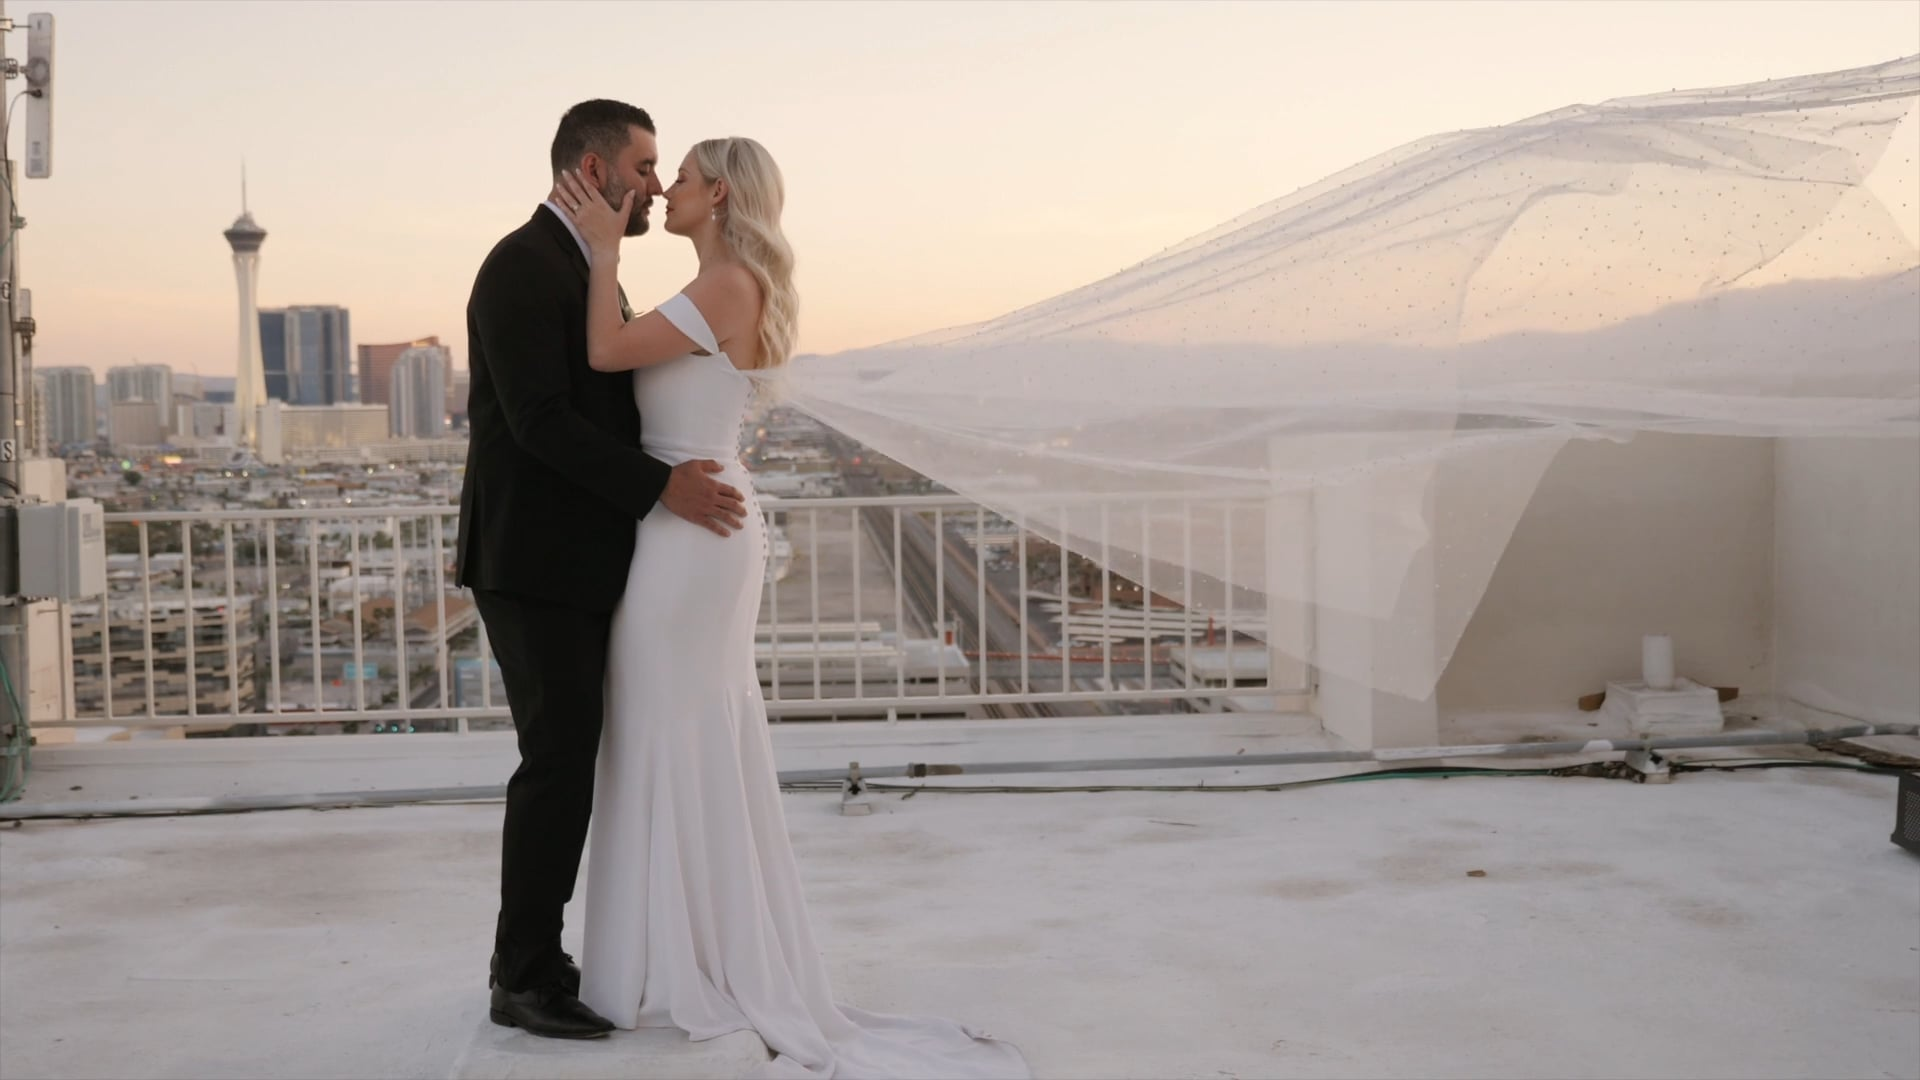 Nicole and Billy || The Plaza Hotel, Las Vegas, NV